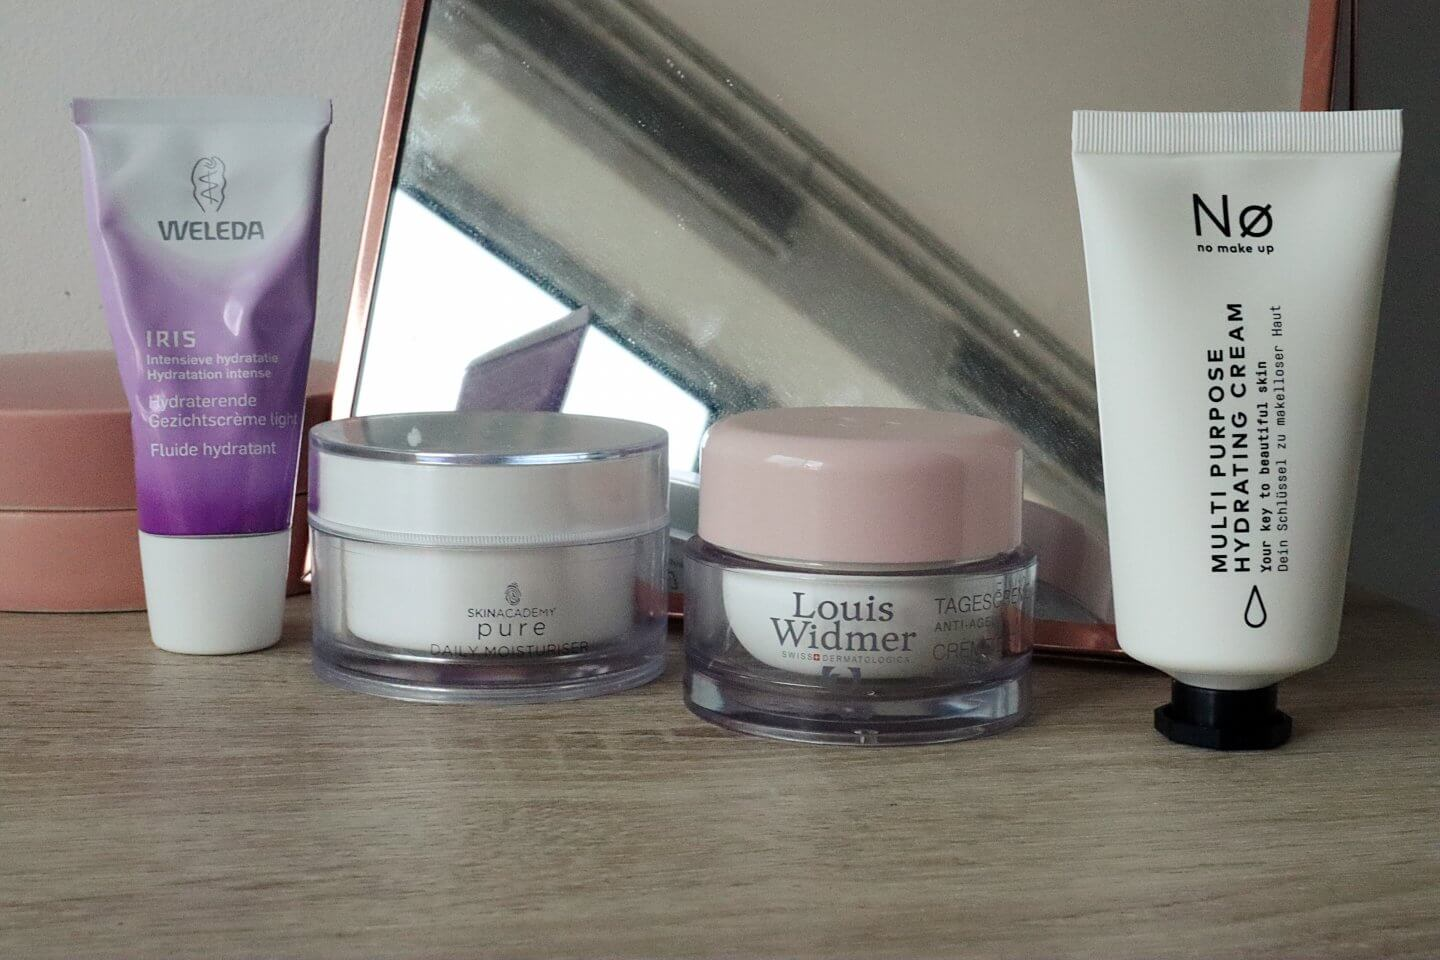 I thought that it might be a good idea to write a blogpost about 4 different kind of moisturisers and review them for you. They are all affordable or semi affordable and can be found in the drugstore. So if you want to know which moisturisers I chose to review and what I think of them, keep reading!